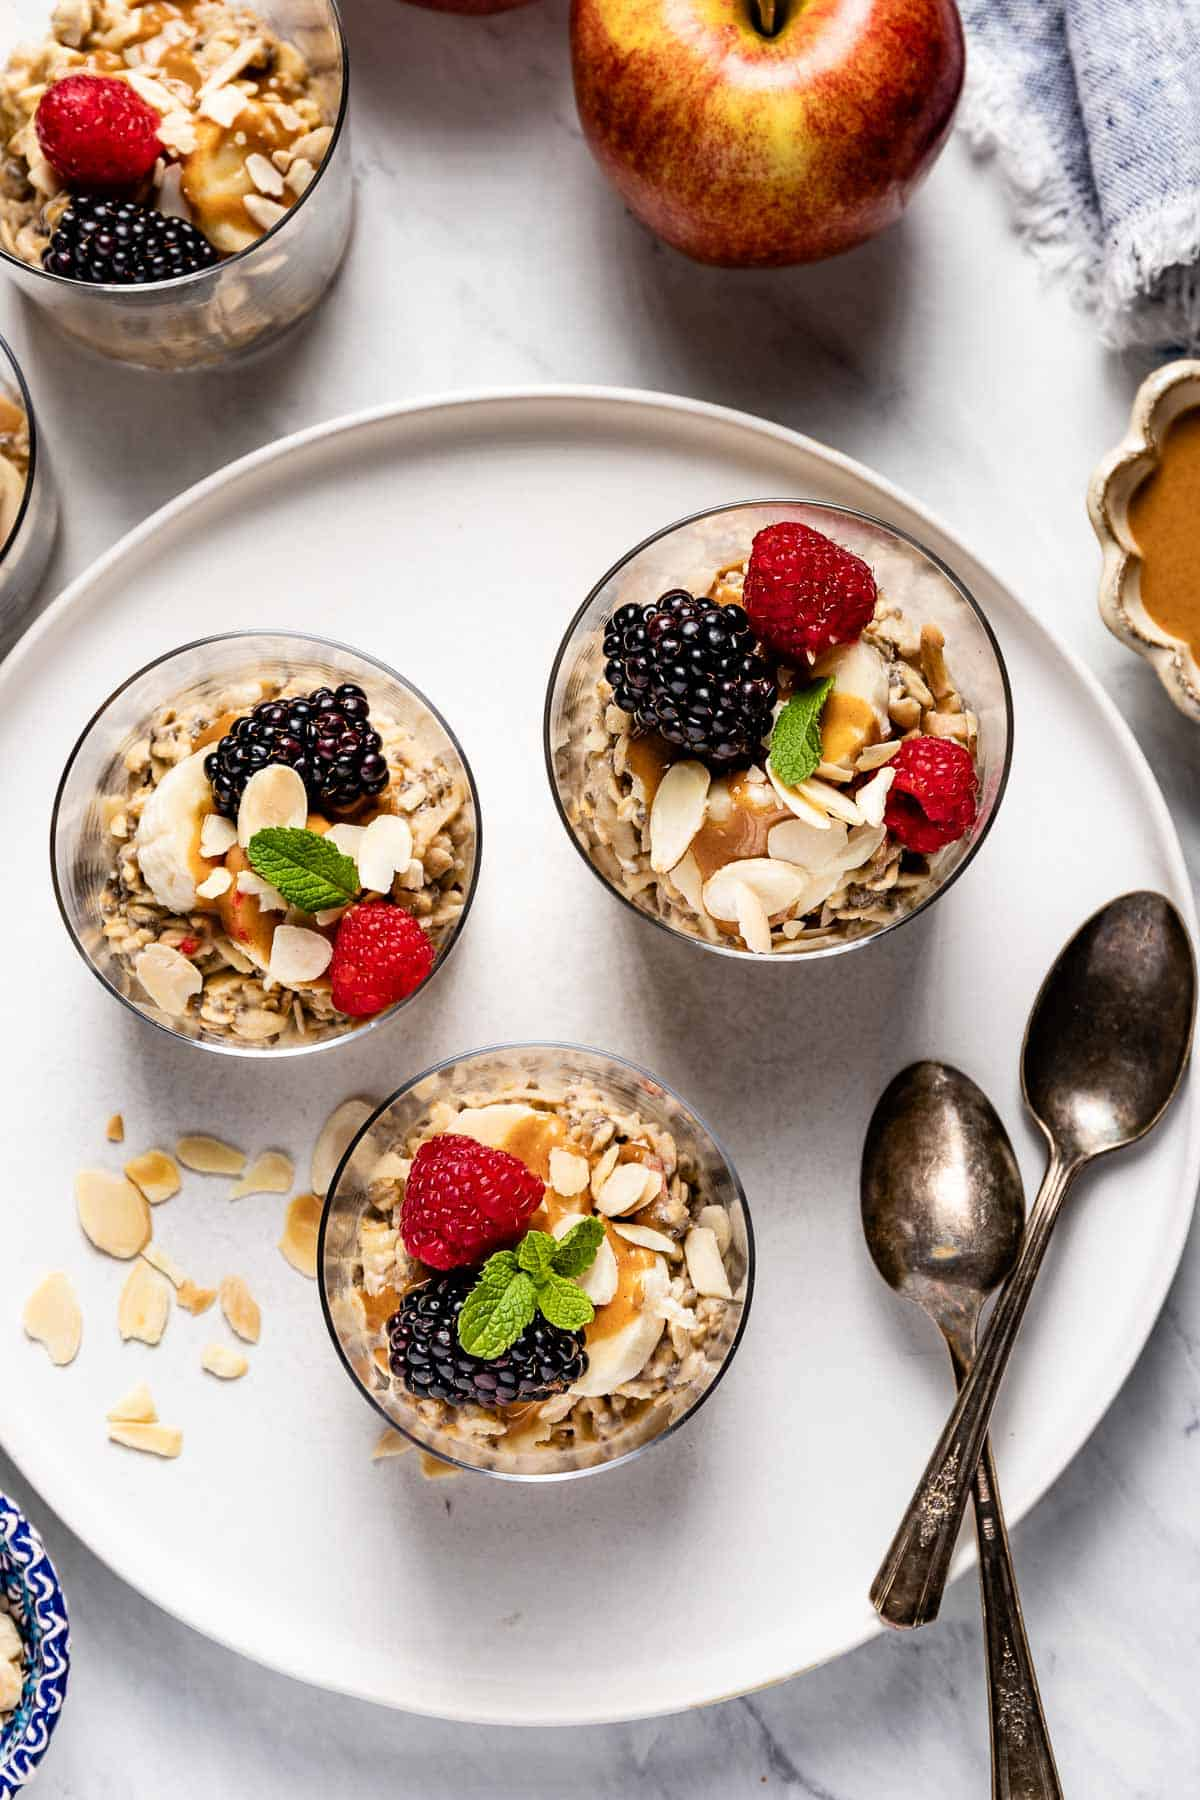 Muesli yogurt breakfast in glass topped off with fruit from top view